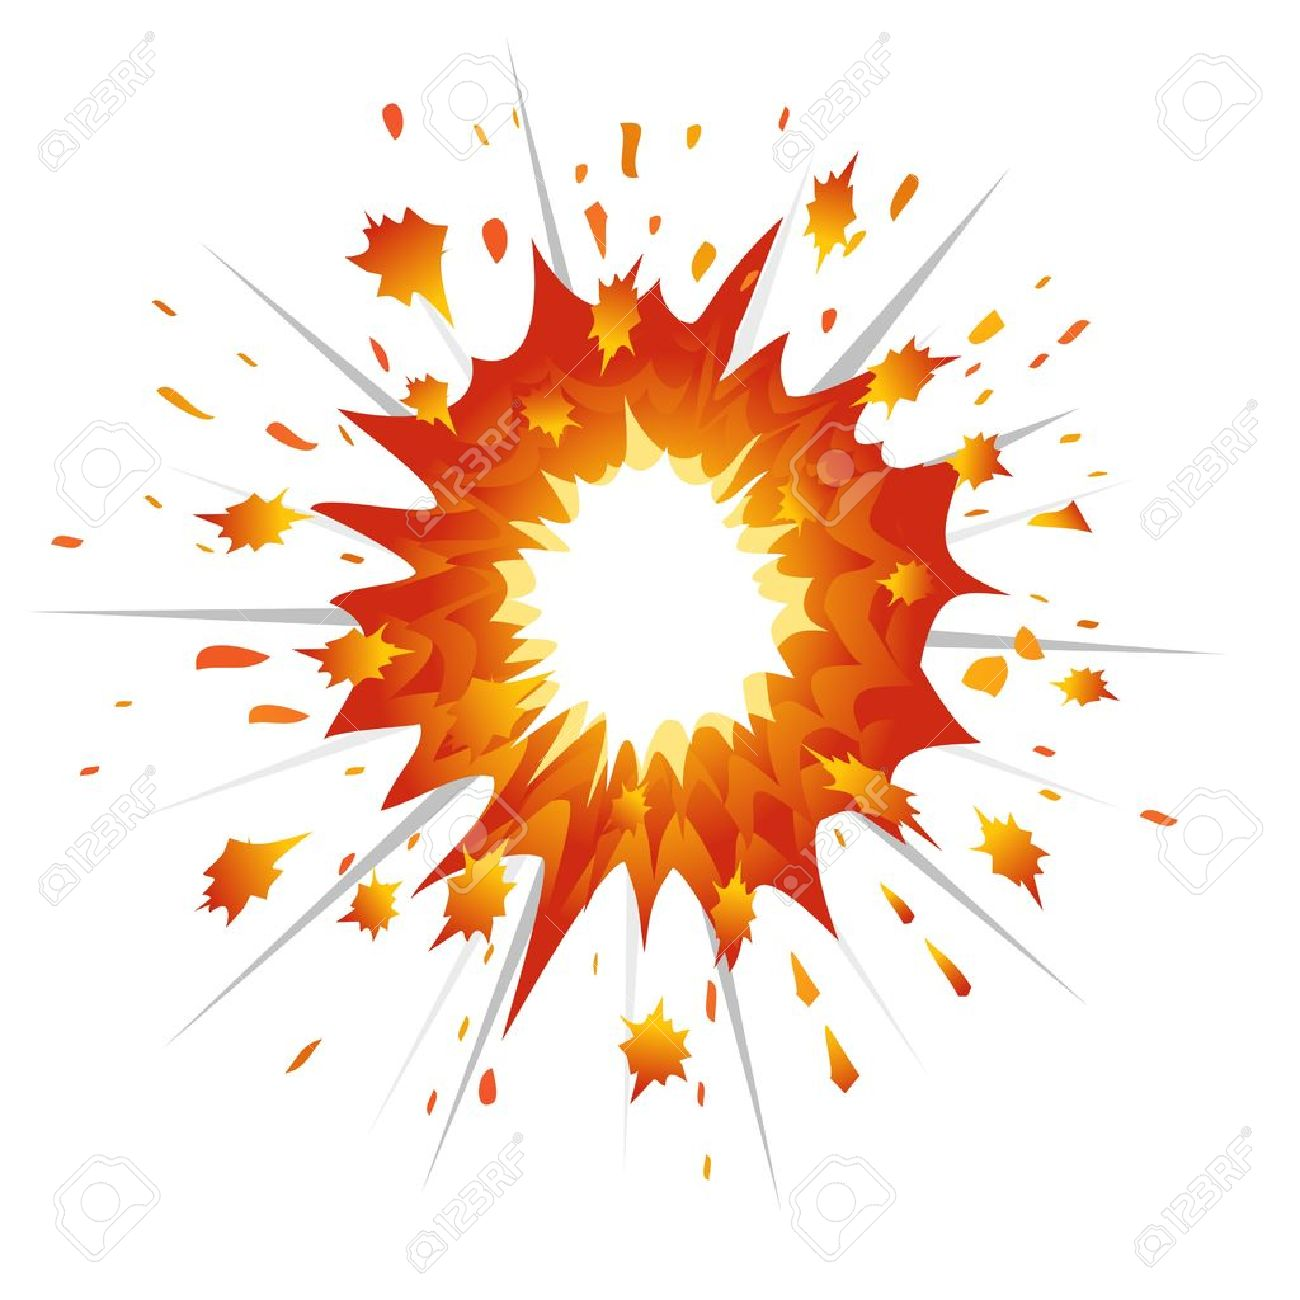 Blast clipart images picture freeuse download Bomb blast clipart 4 » Clipart Station picture freeuse download